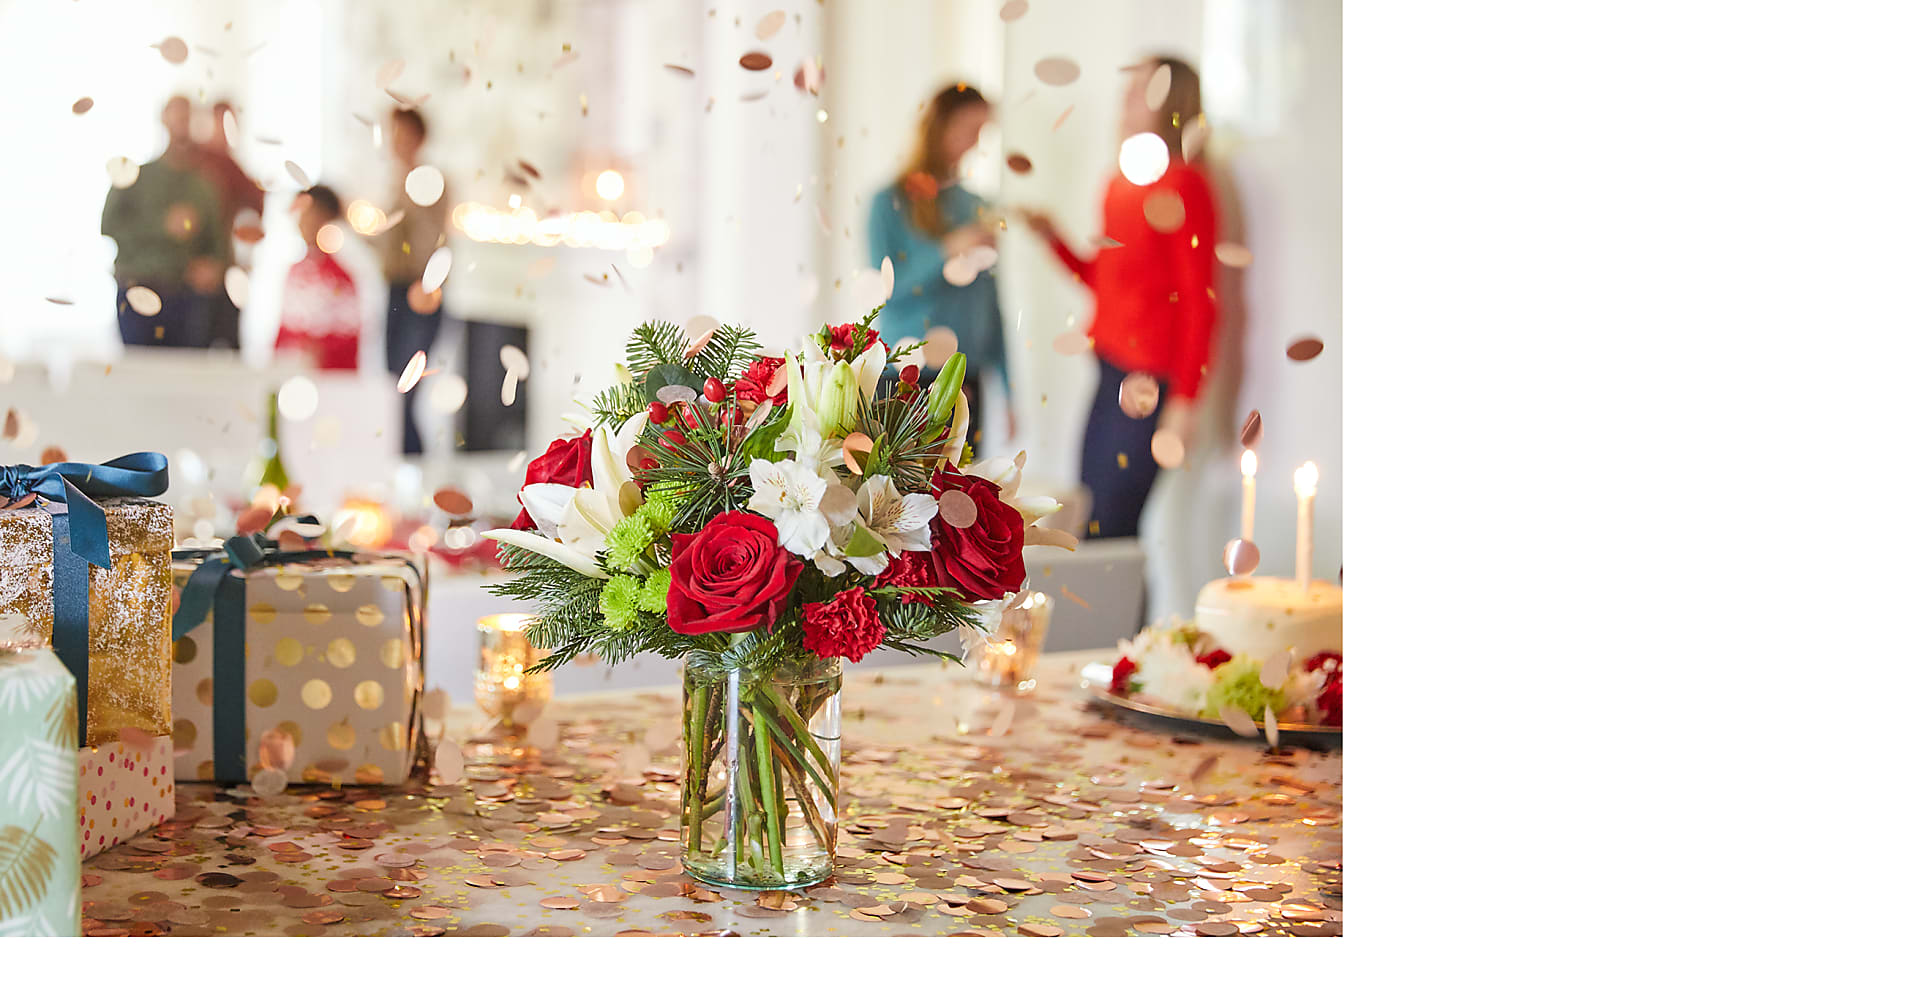 Christmas Spirit Bouquet - Image 4 Of 4